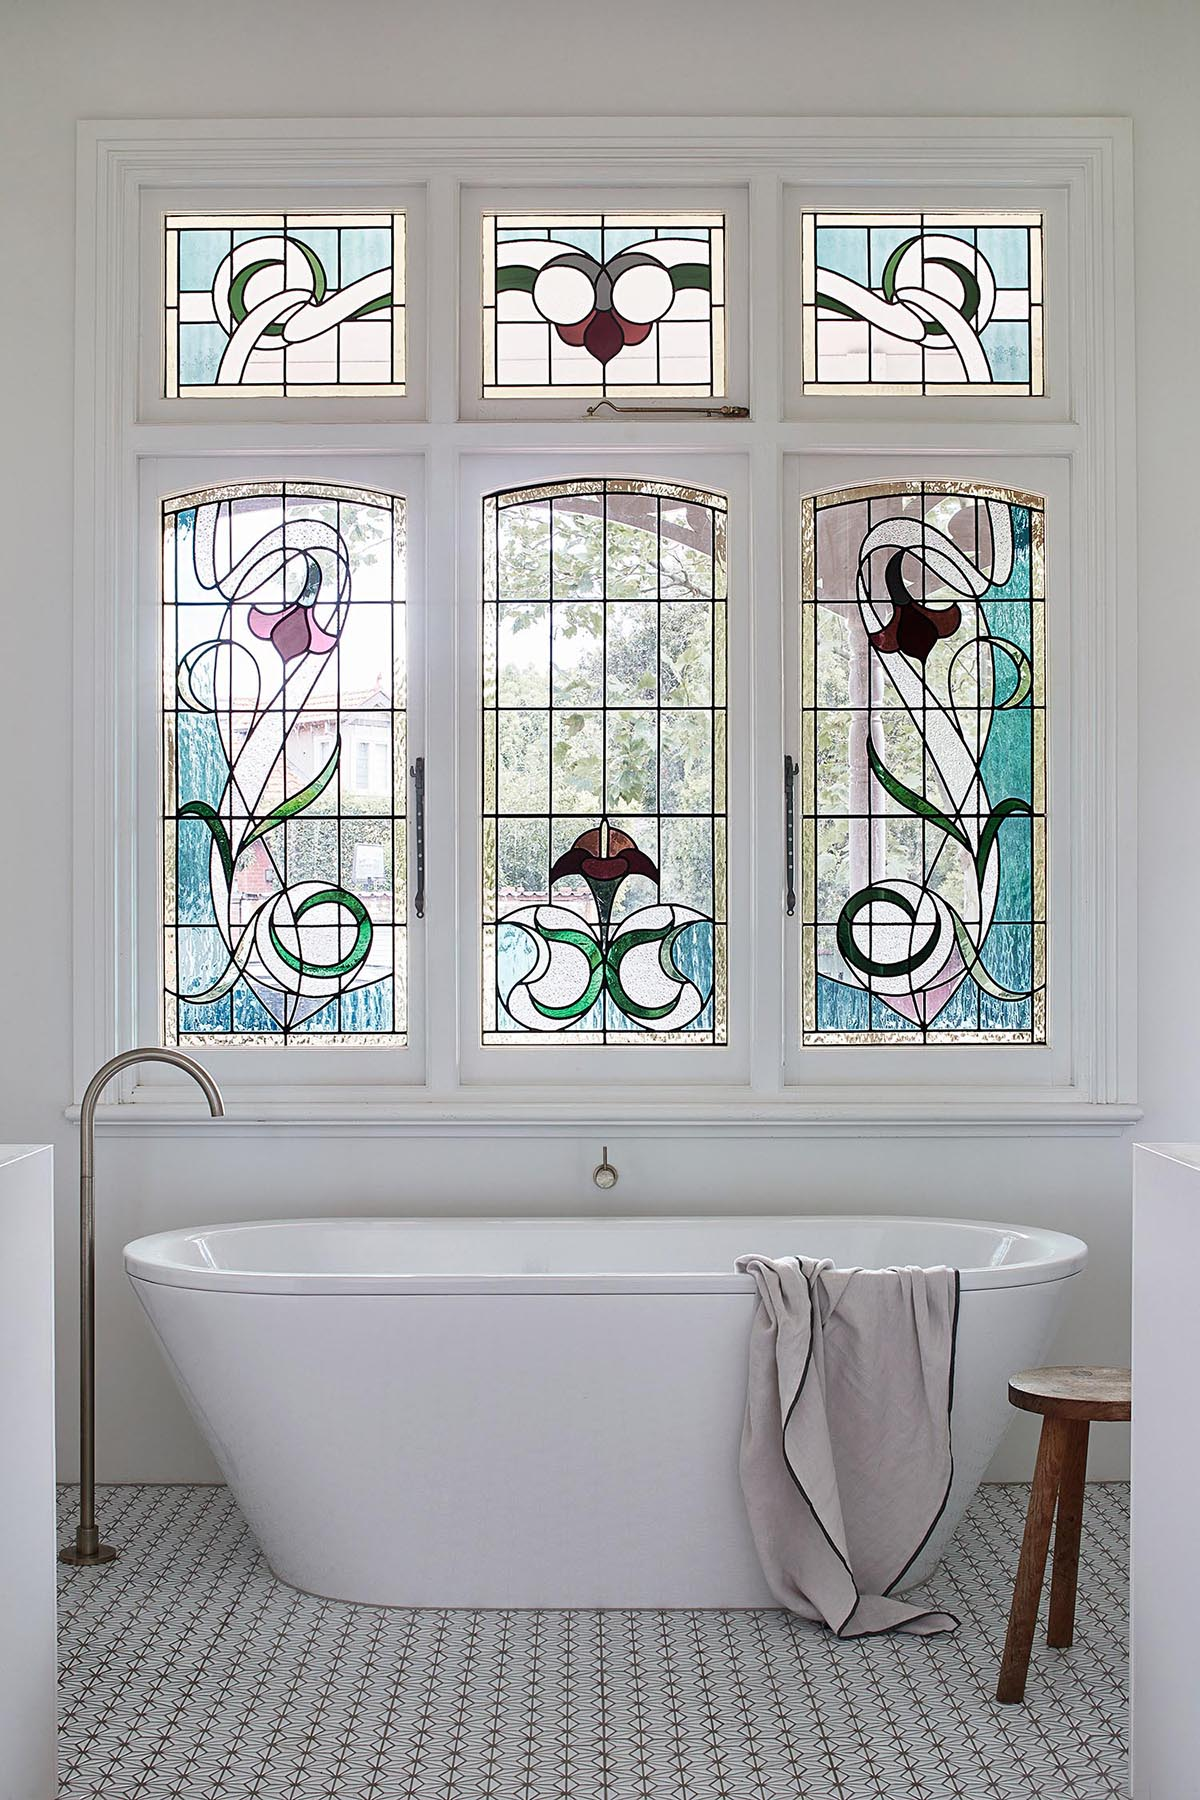 A bathroom with a stained glass window and a modern freestanding bathtub.